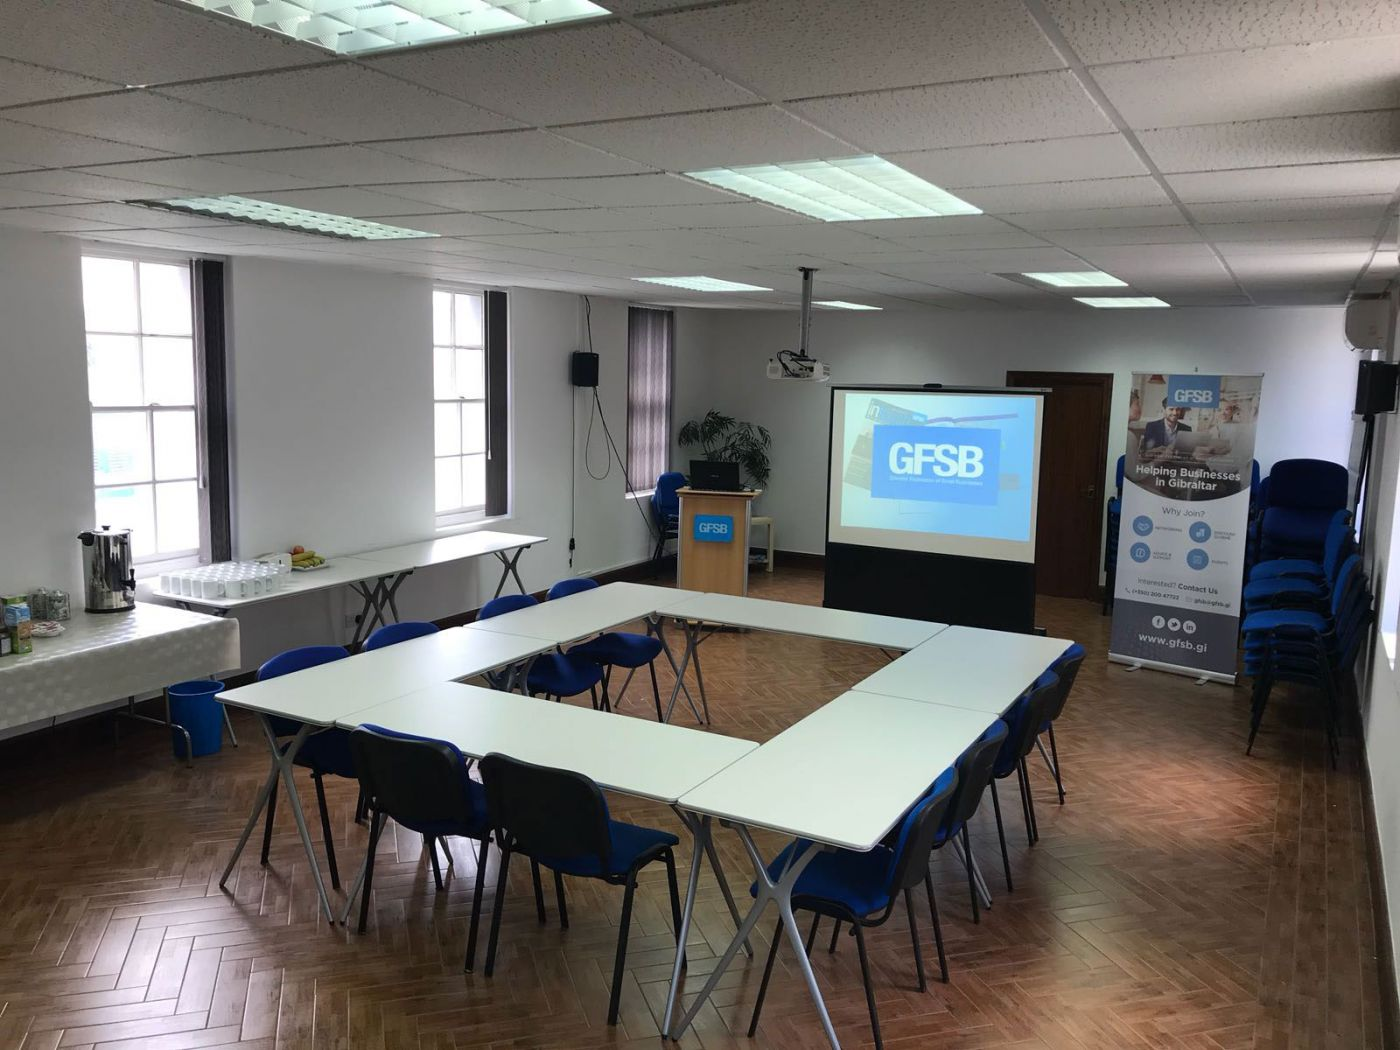 GFSB Conference Room